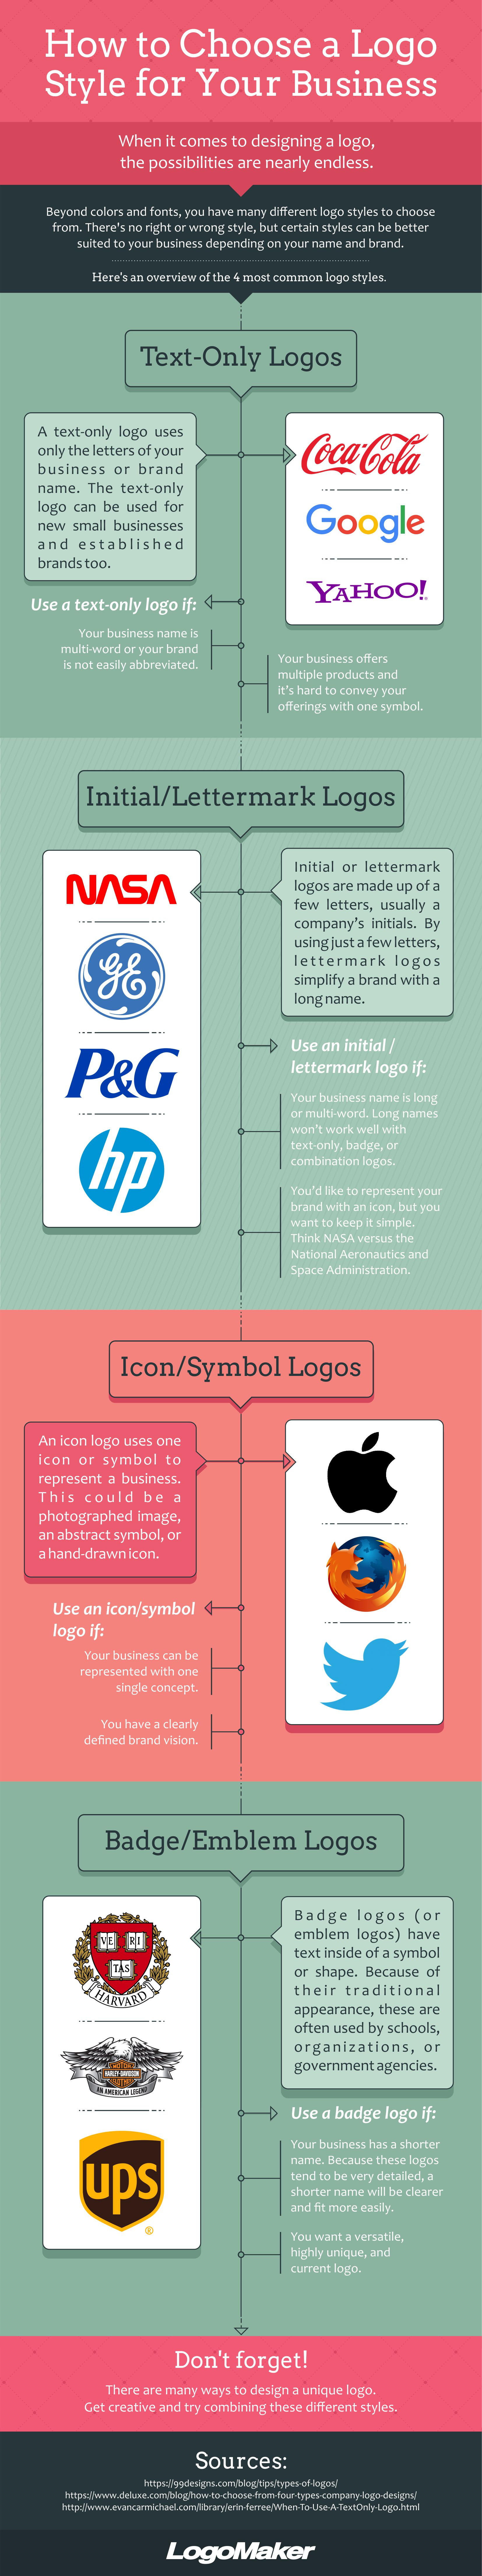 How-to-Choose-Logo-Style-IG